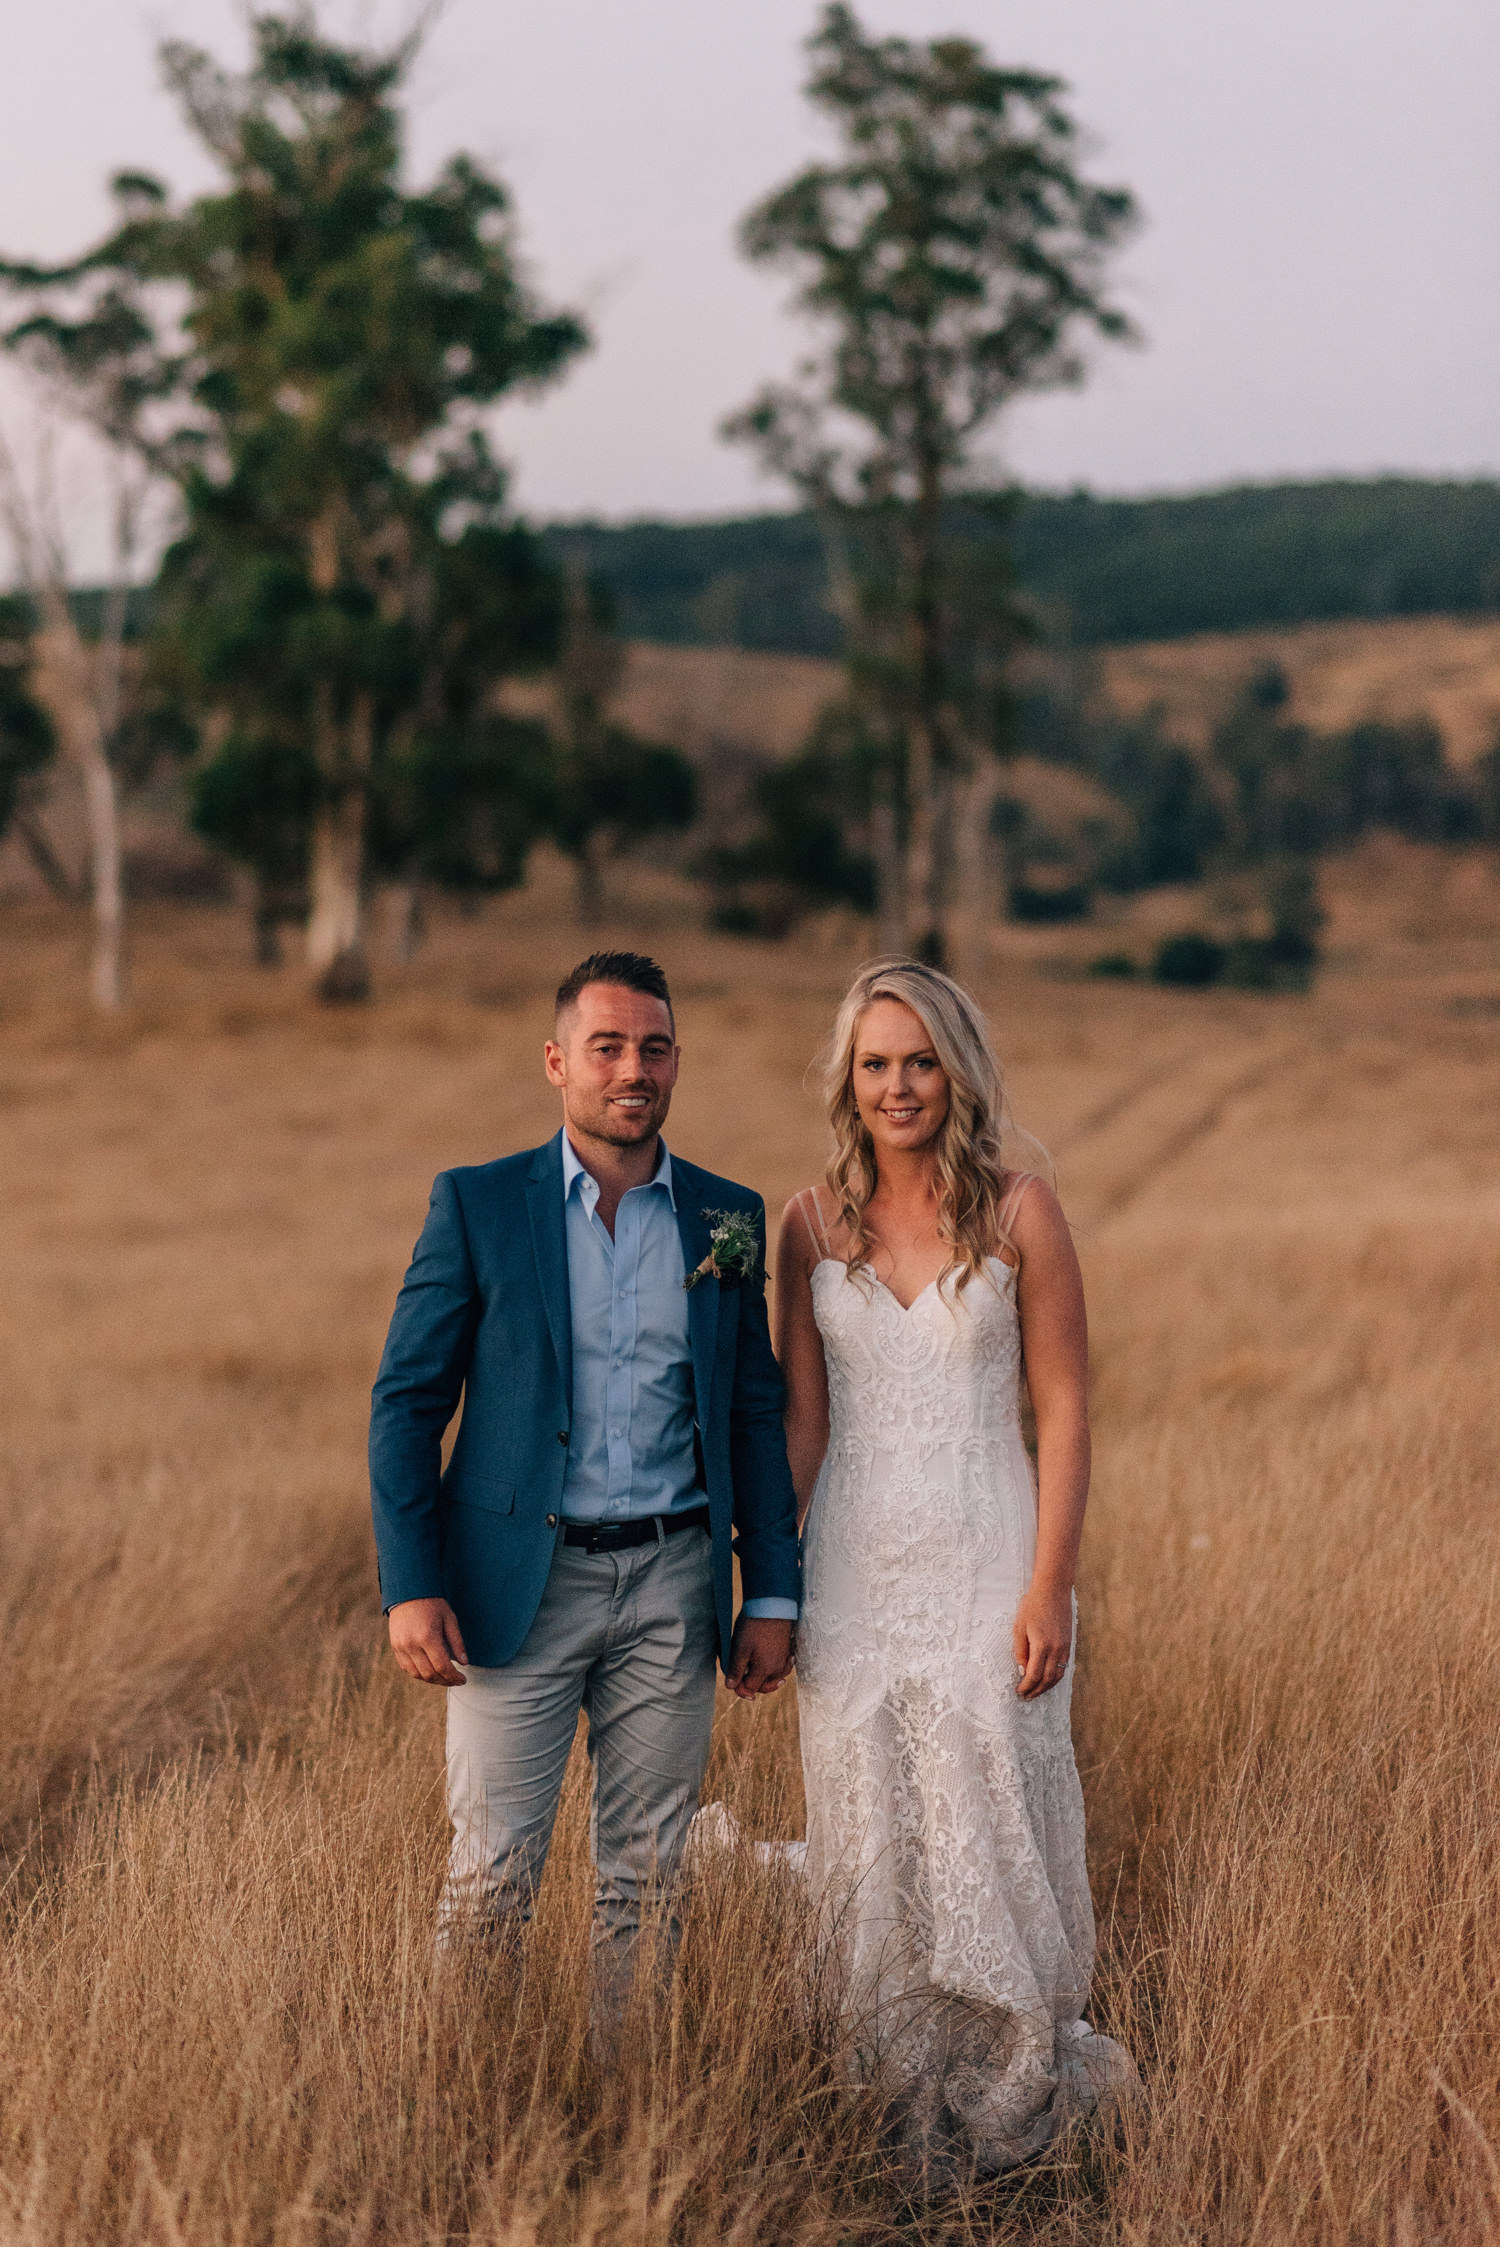 Launceston-Wedding-Photographer-106.jpg